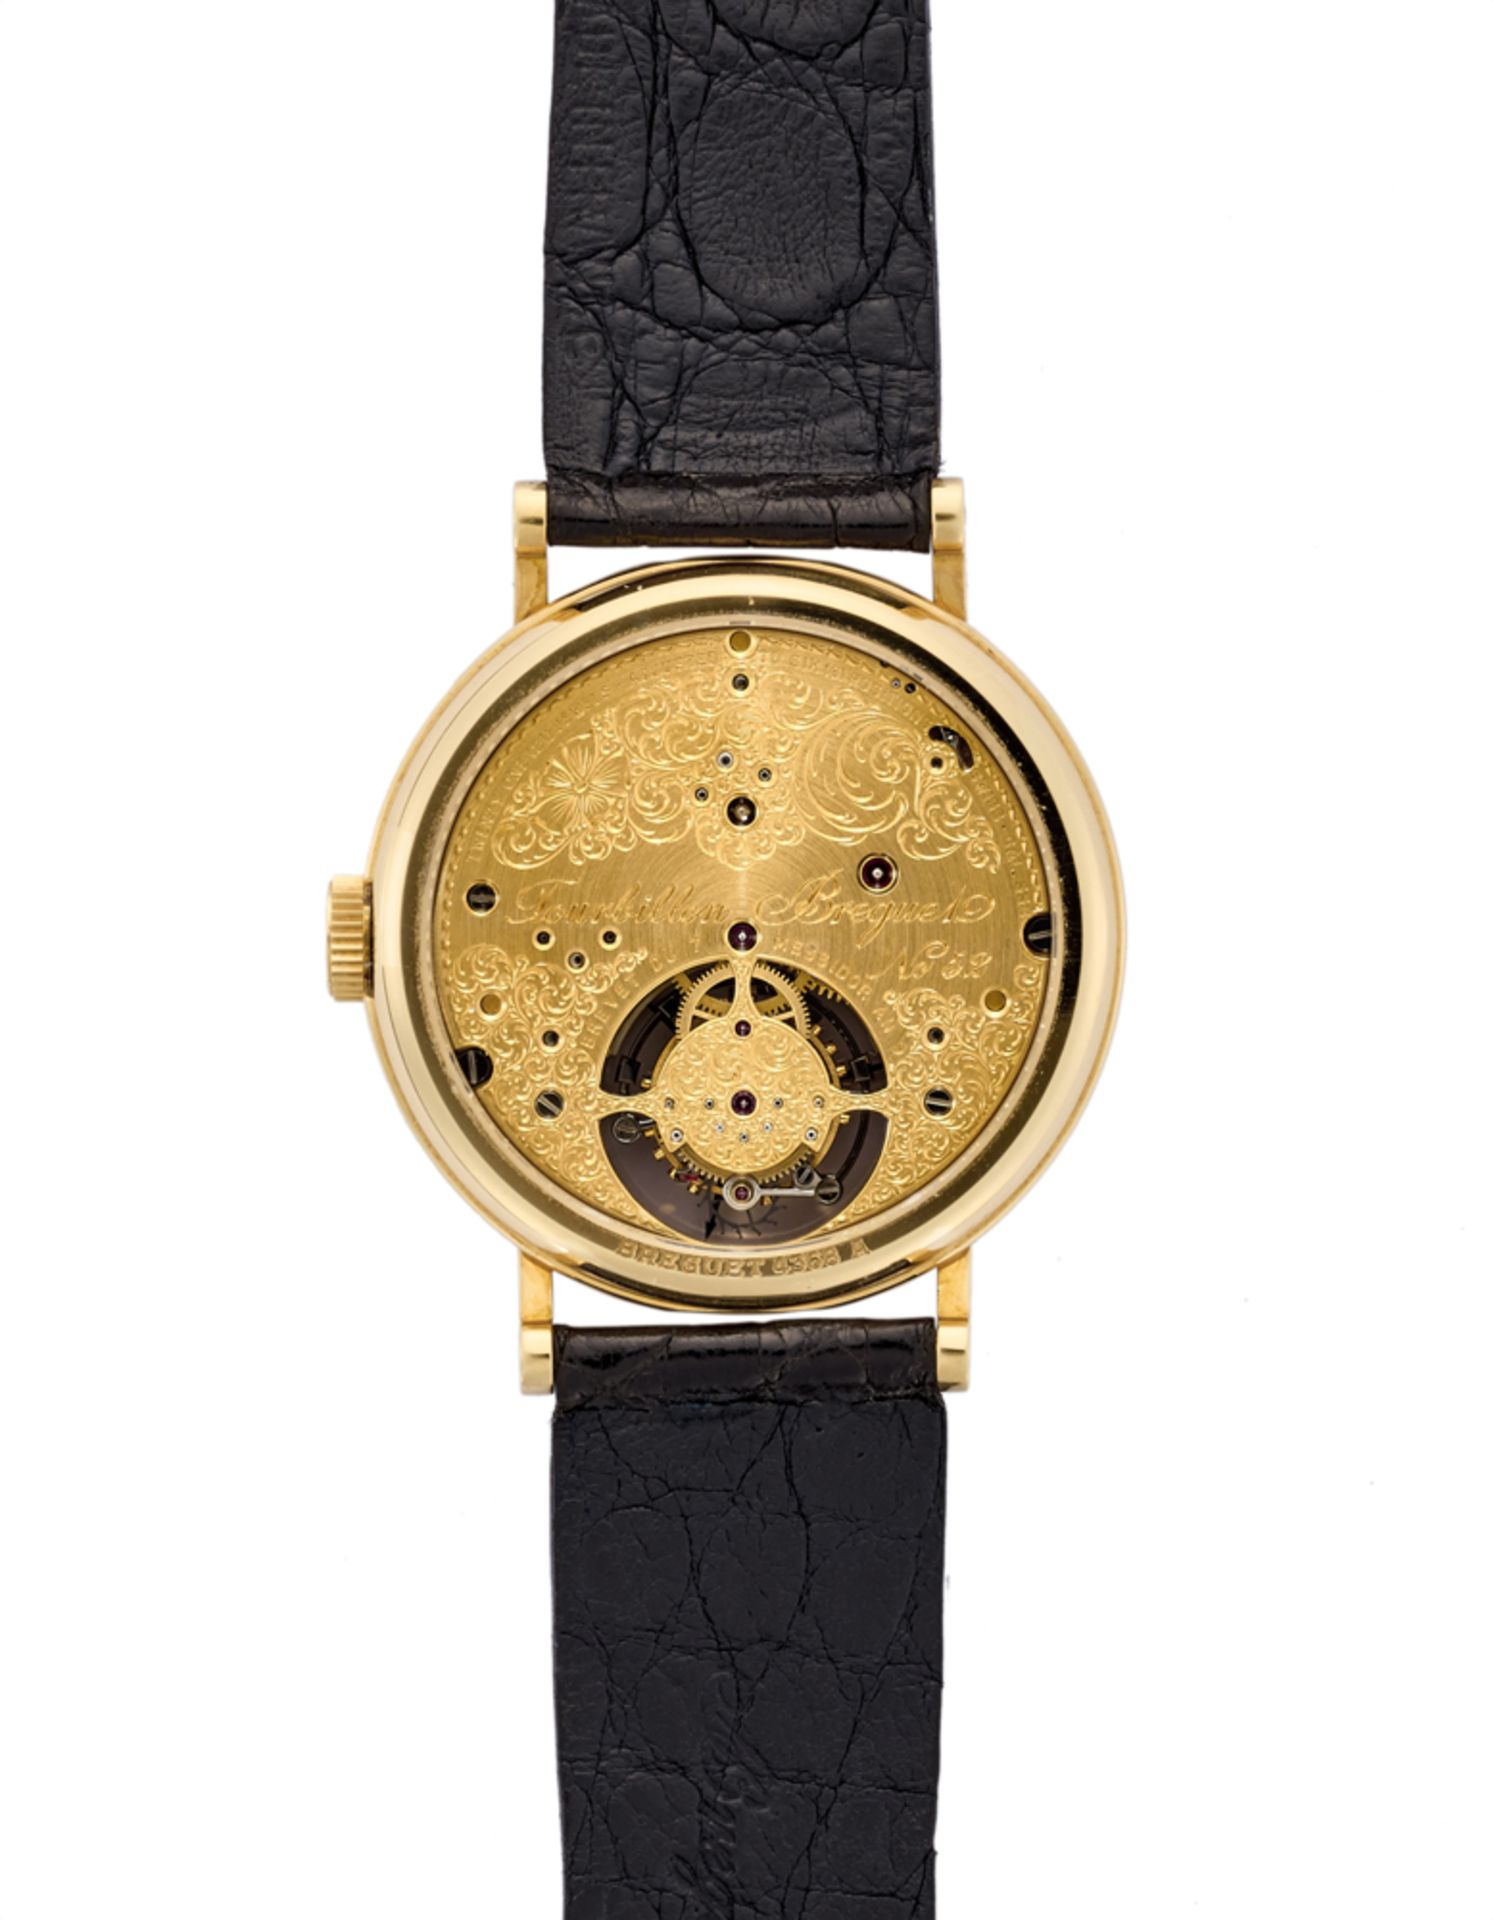 BREGUETGent's 18K gold wristwatch1990sDial, movement and case signedManual wind movement with - Image 2 of 2